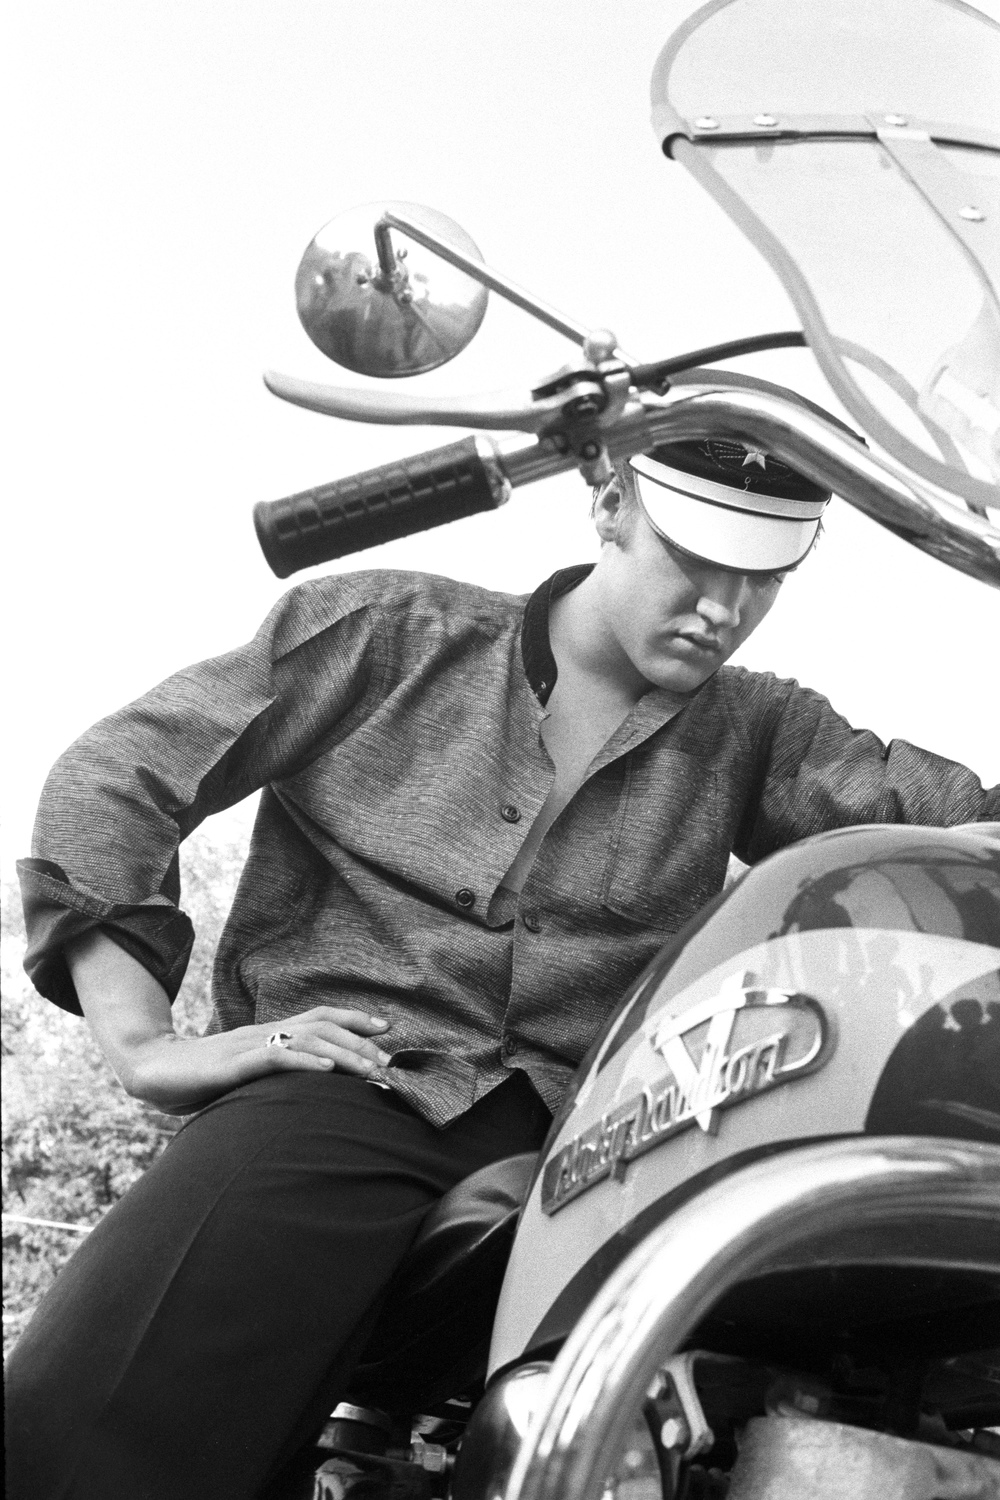 Elvis on his Harley-Davidson, wondering why it won't start, Memphis, Tennessee. July 4, 1956